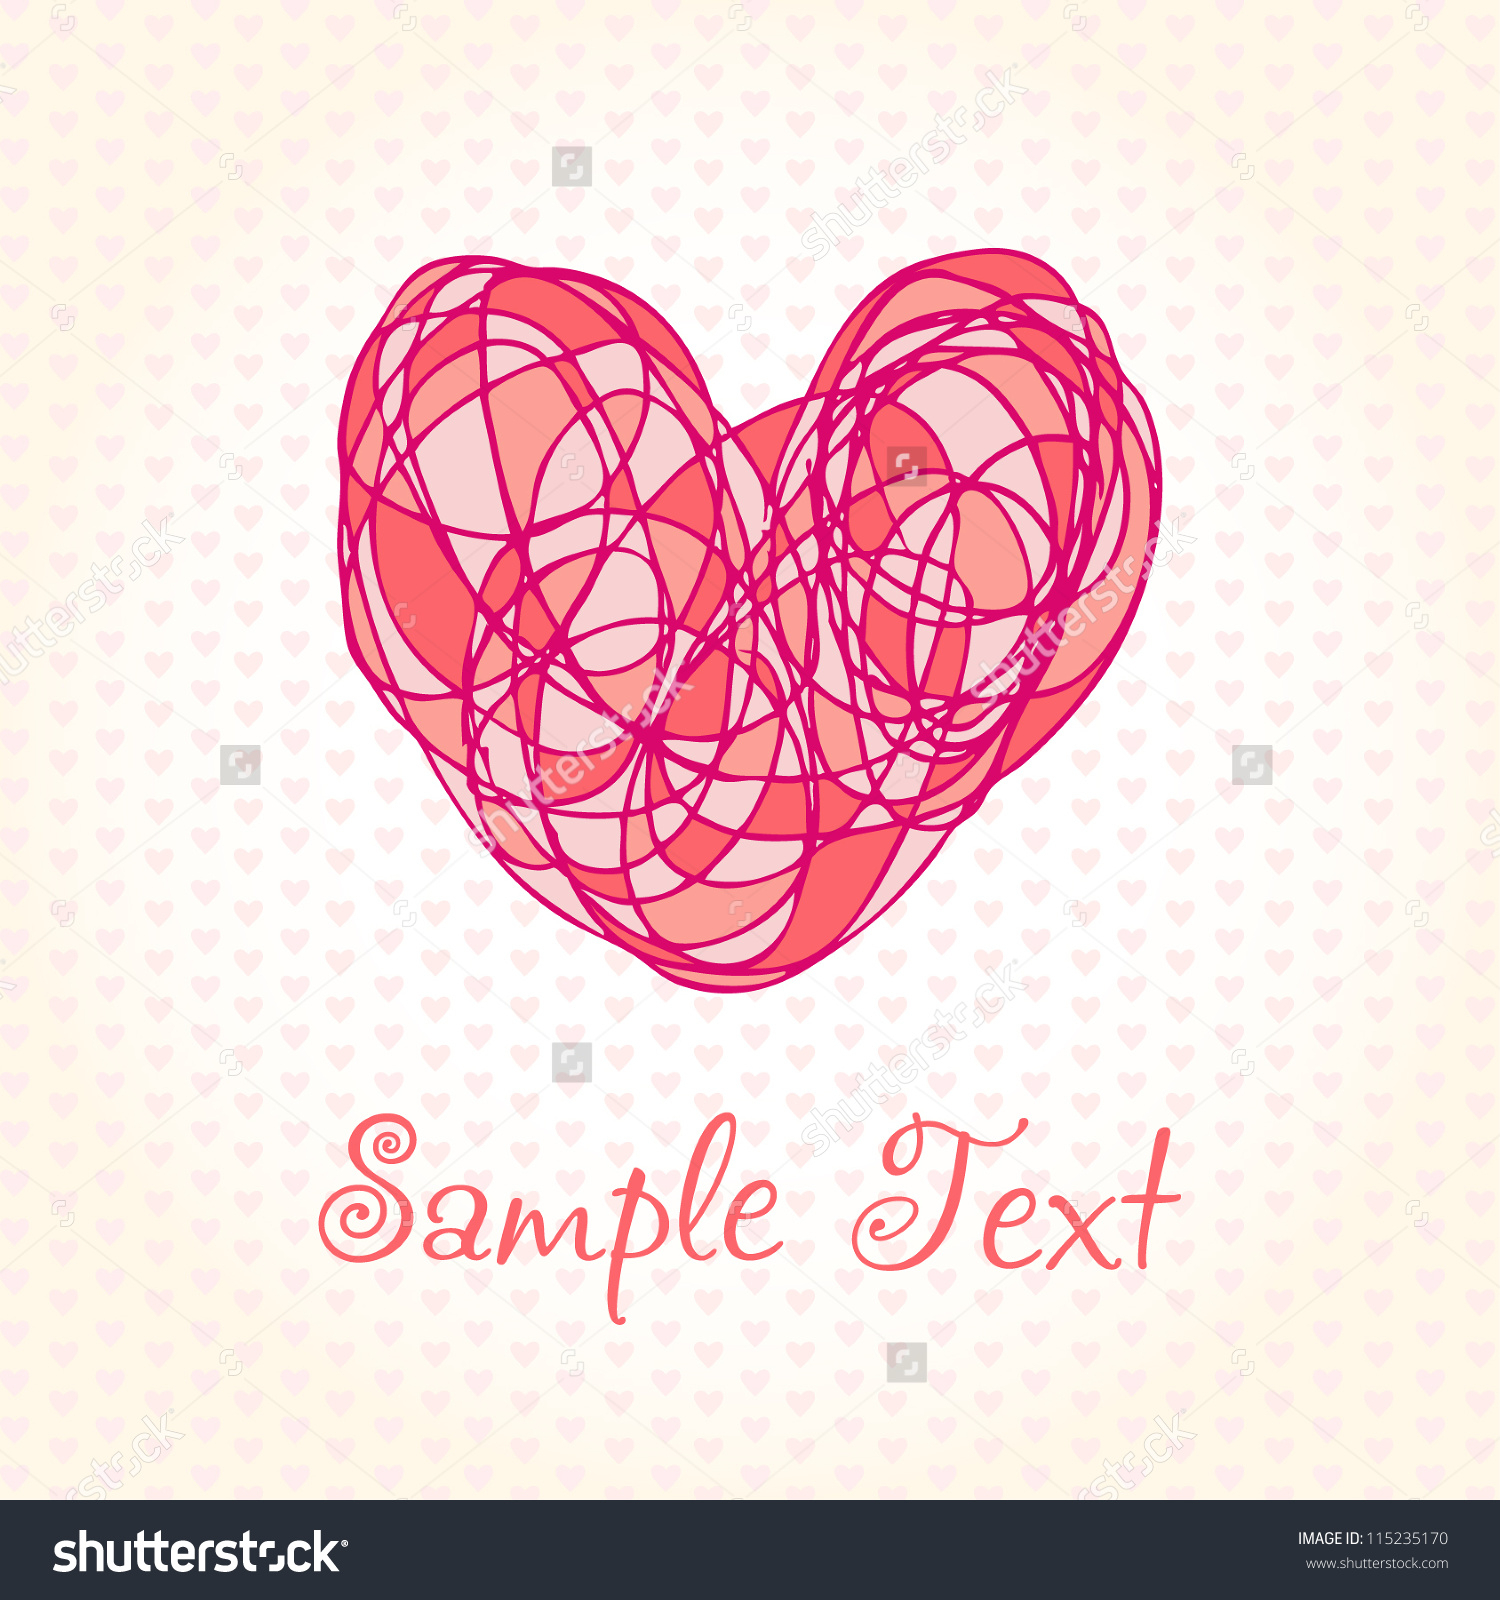 1500x1600 Cute Heart Designs Drawing Romantic Hand Drawn Background Colorful